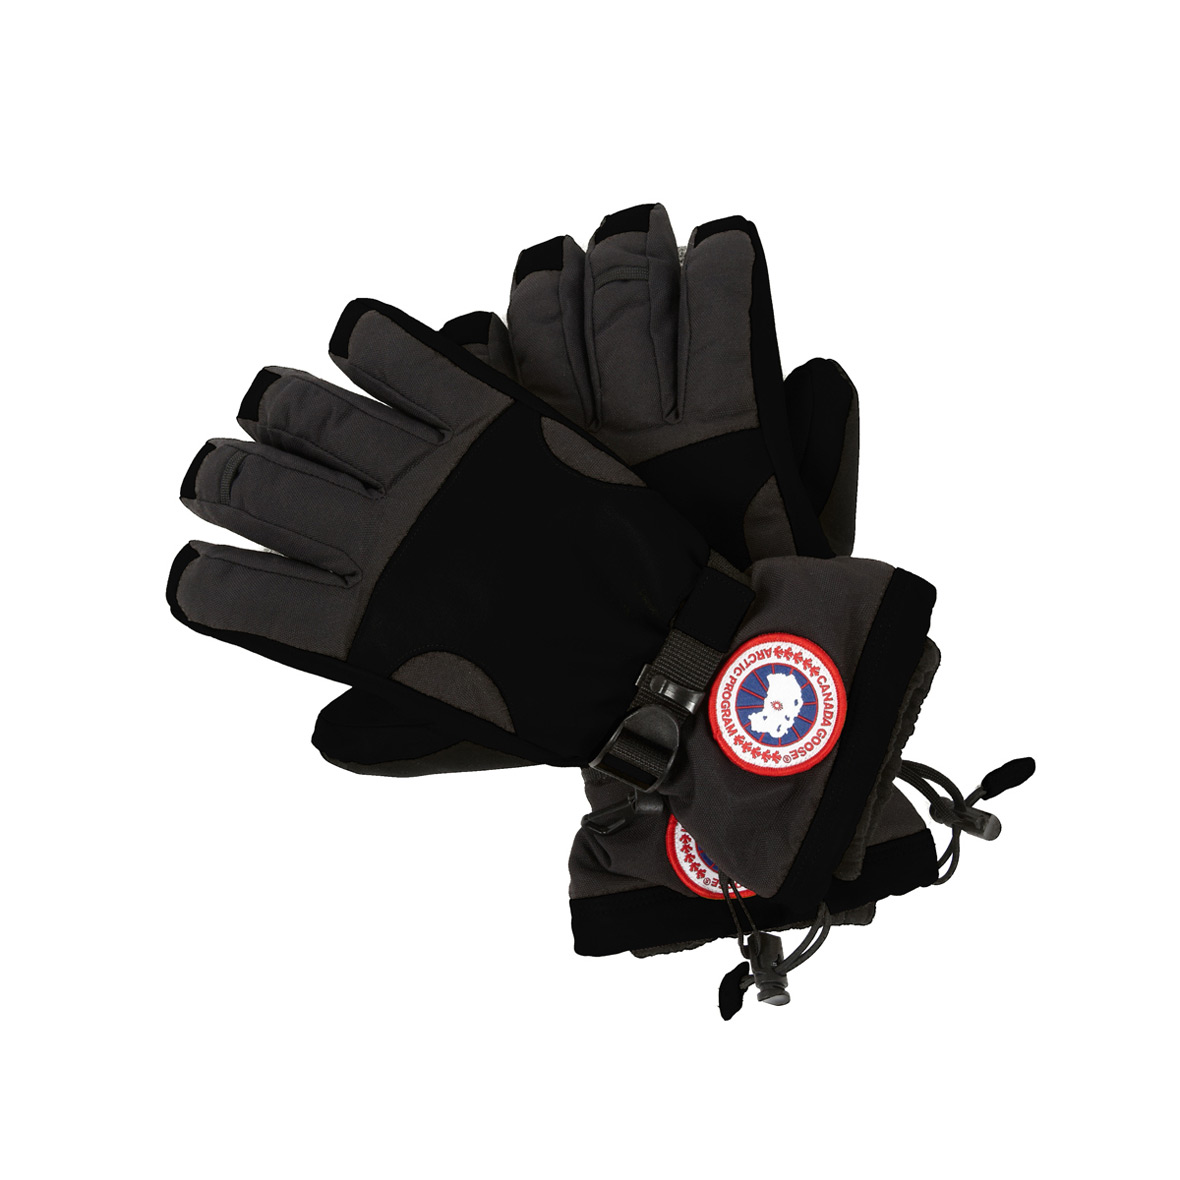 Canada Goose Work Inspired Glove BLACK For Men